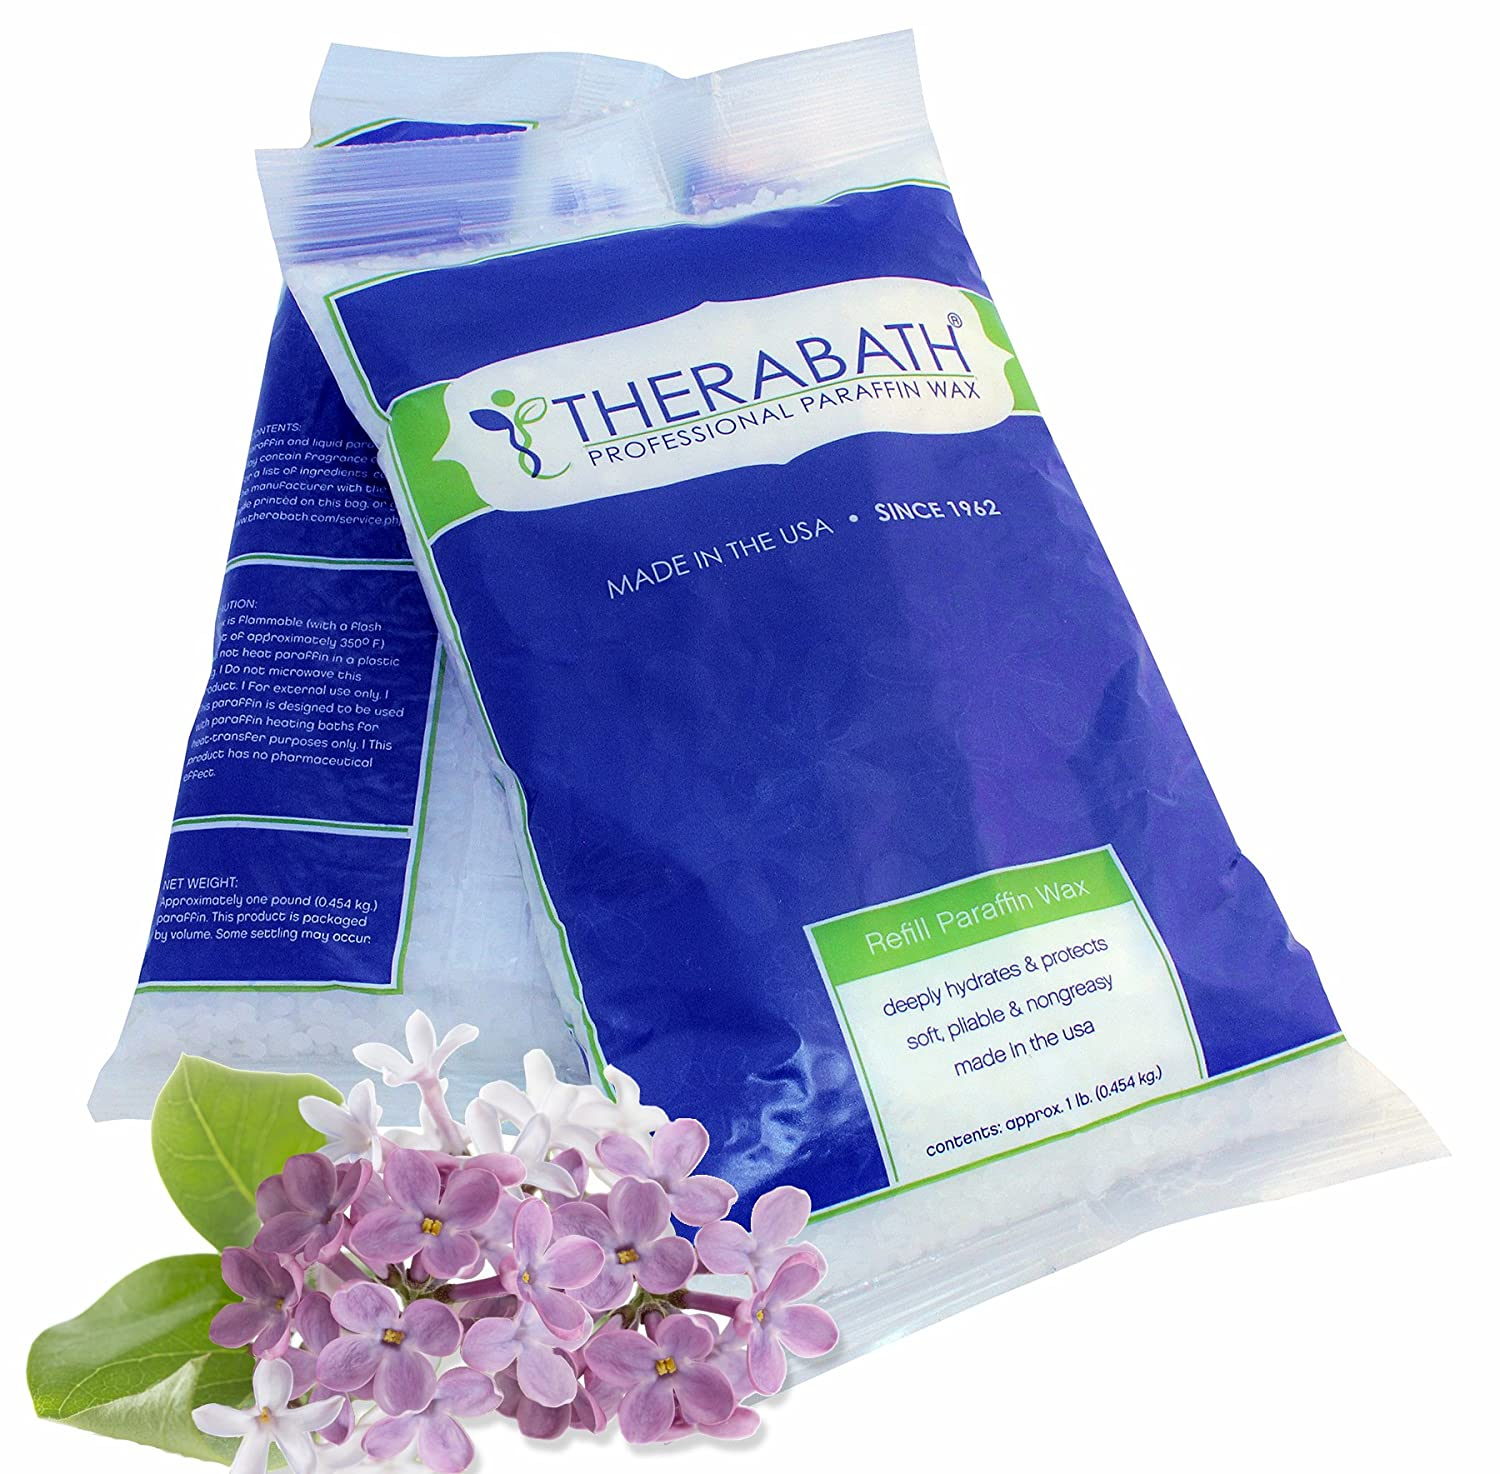 Therabath Paraffin Wax Refill - Use To Relieve Arthitis Pain and Stiff Muscles - Deeply Hydrates and Protects - 6 lbs (Fresh Squeezed Lemon) 0130